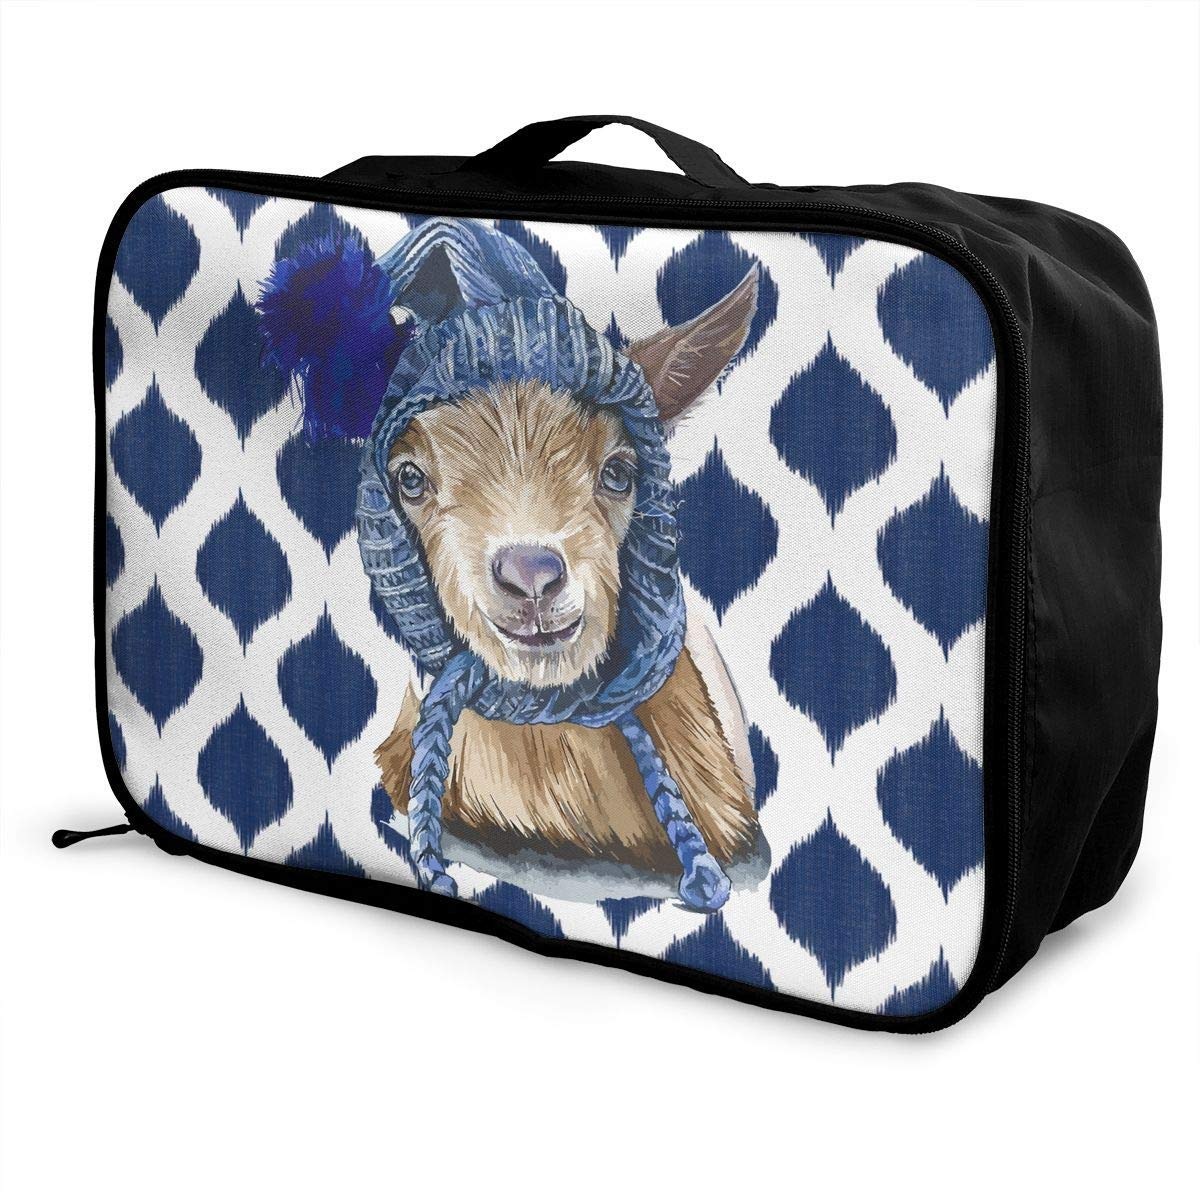 Portable Luggage Duffel Bag Lawson The Goat Travel Bags Carry-on In Trolley Handle